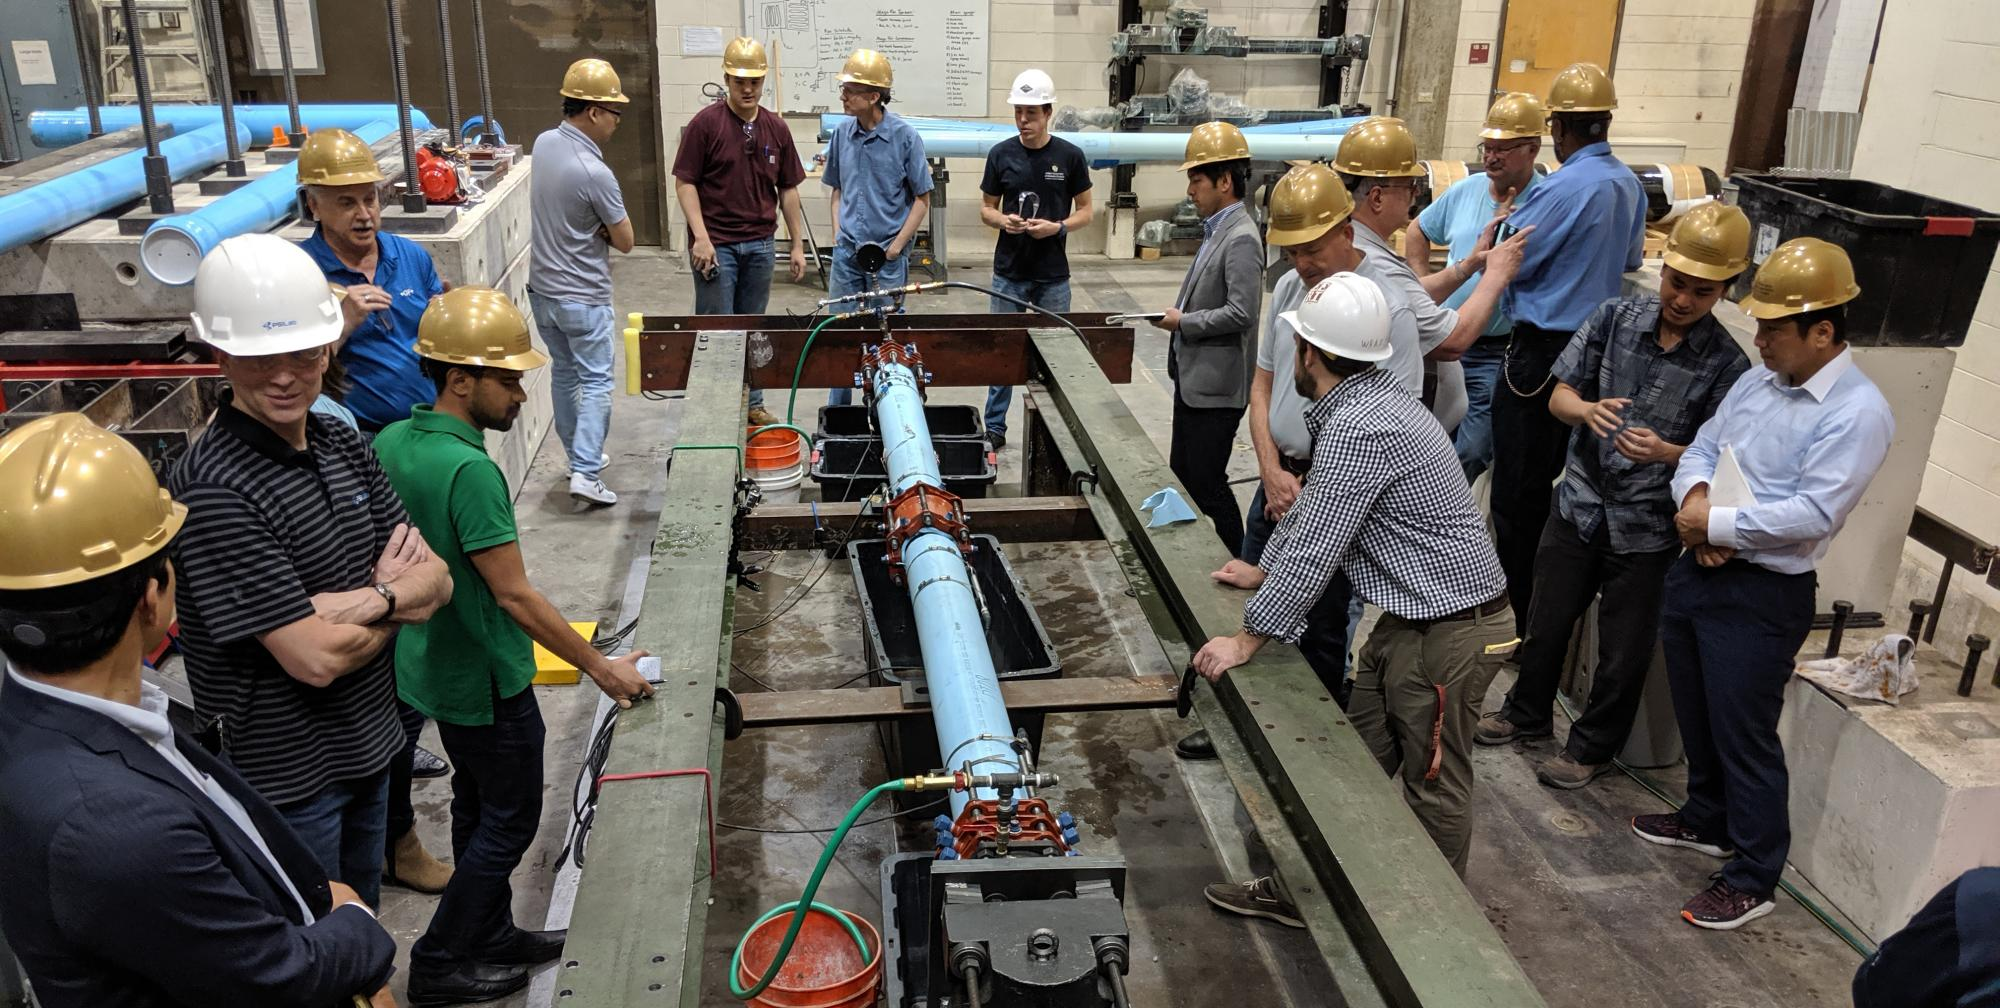 A group of water experts gather around the seismic testing equipment in the CIEST lab.